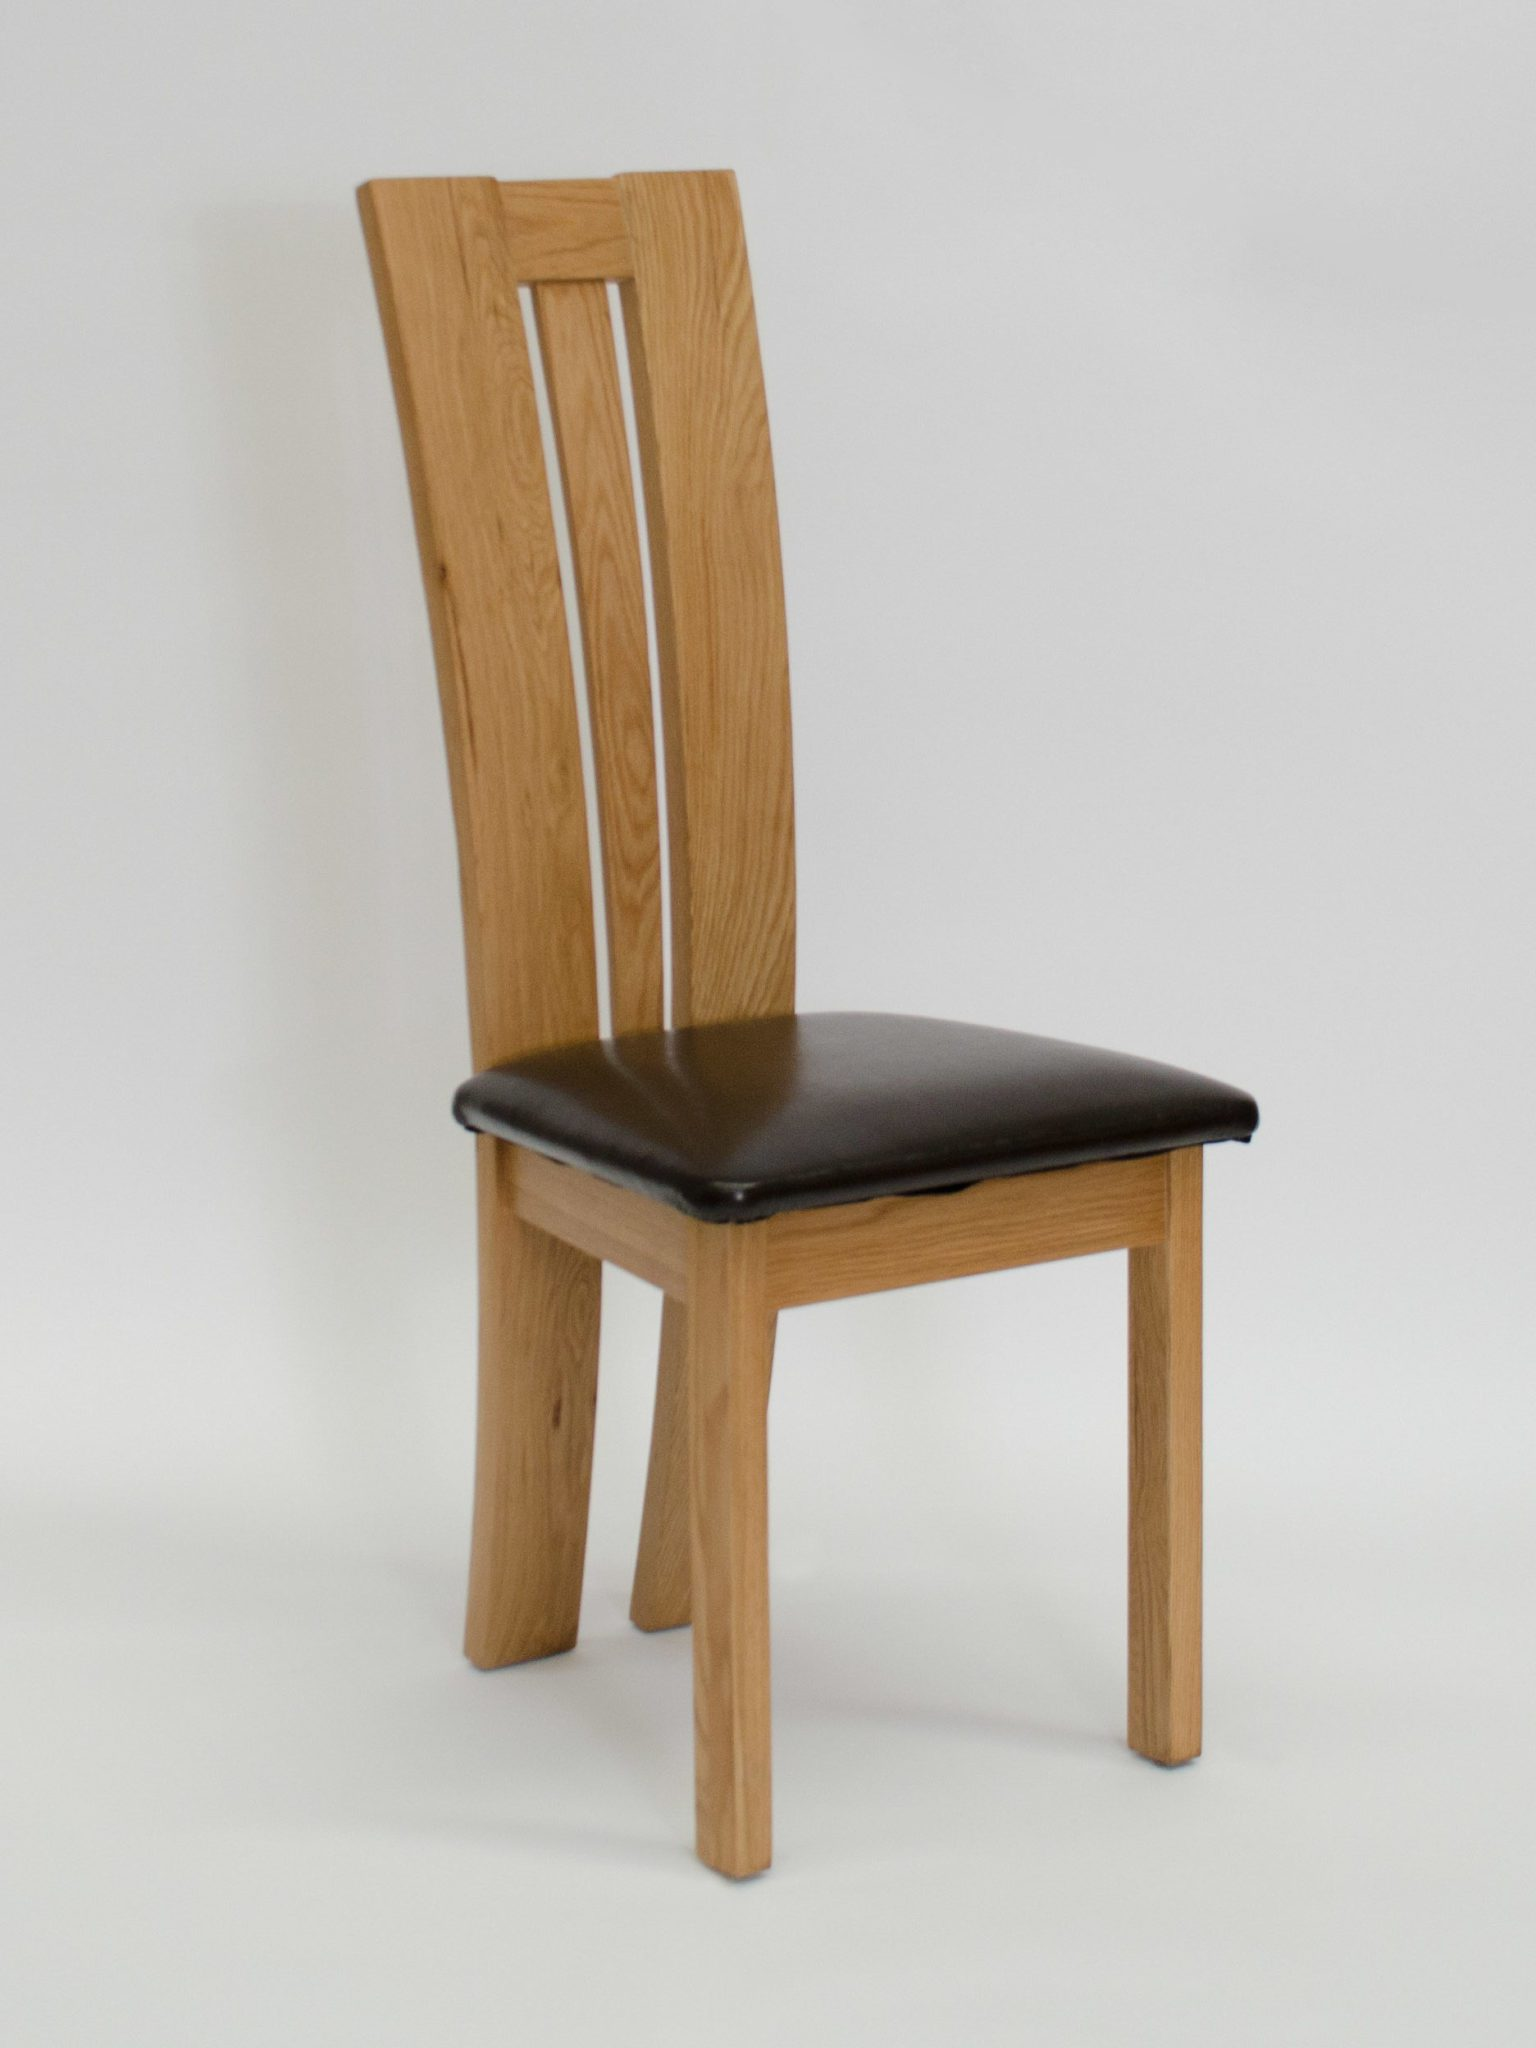 VENEZIA oak dining chair